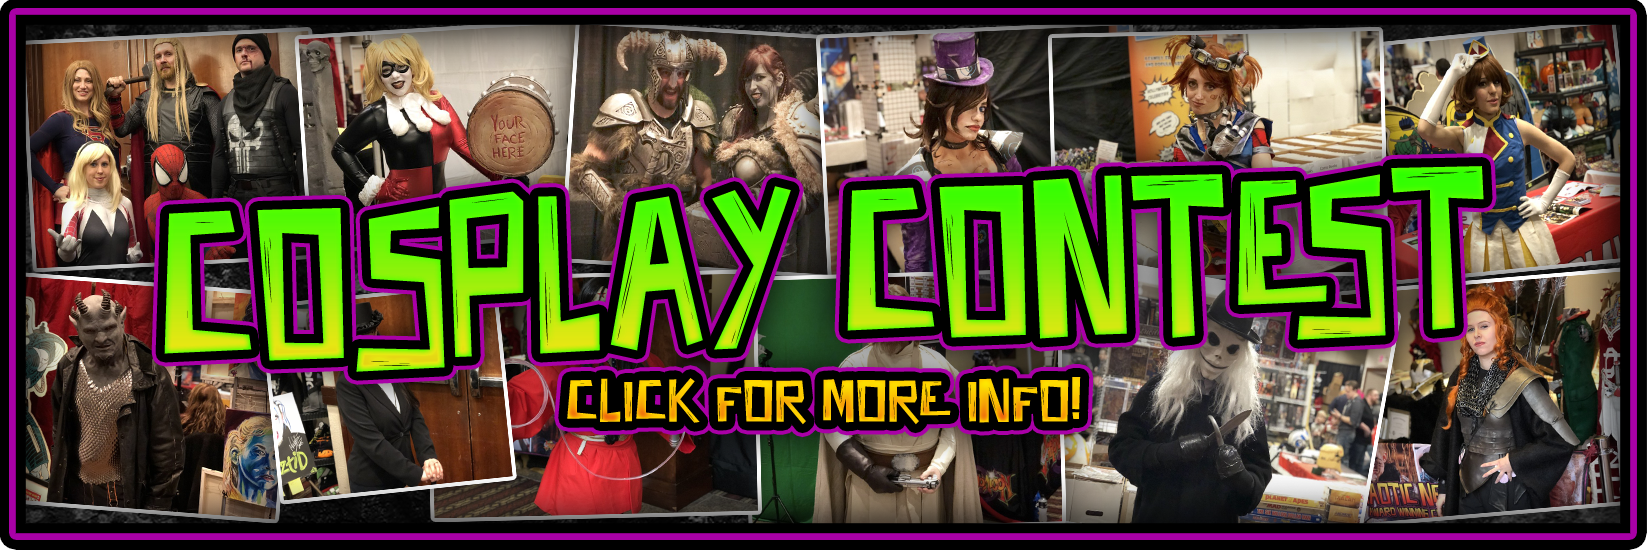 Astronomicon-2-Cosplay-Contest-Banner-Click-Here.png